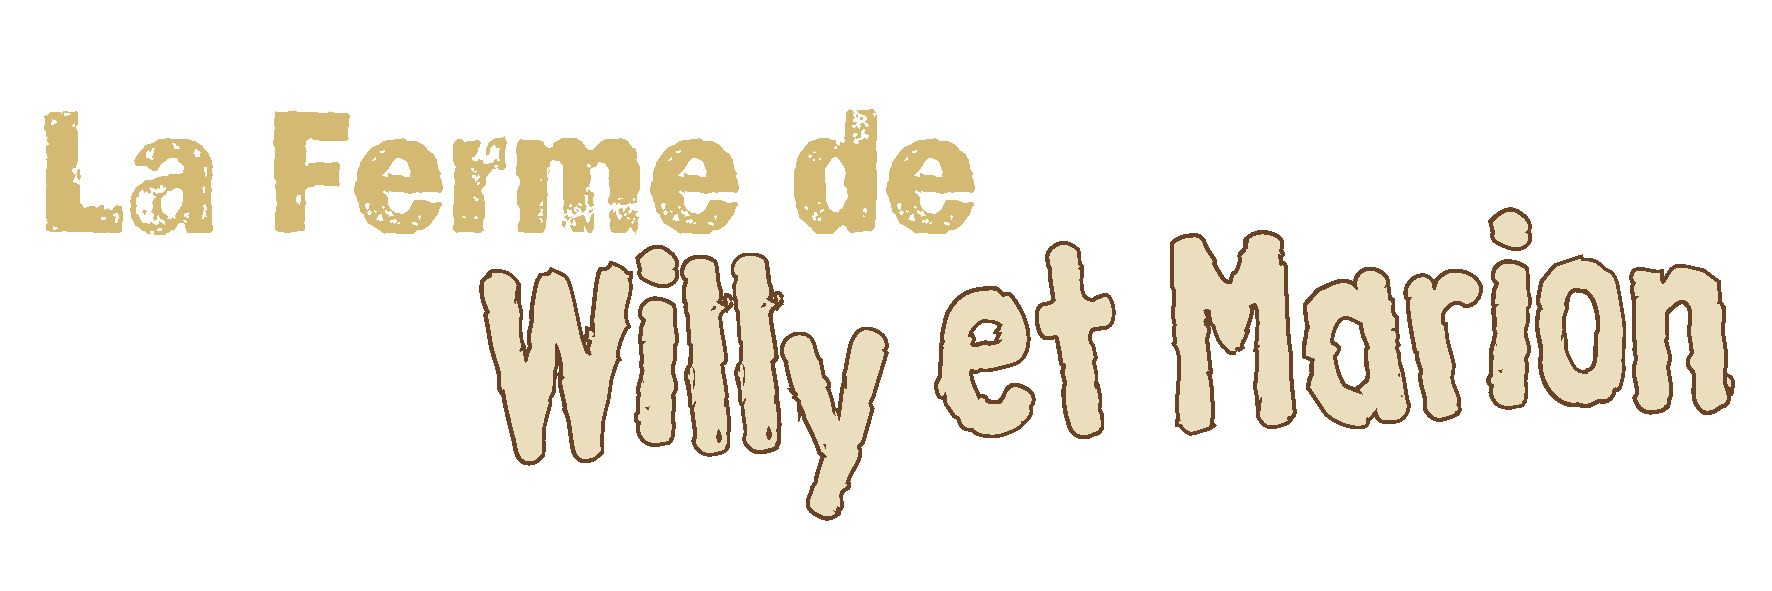 La ferme de Willy et Marion